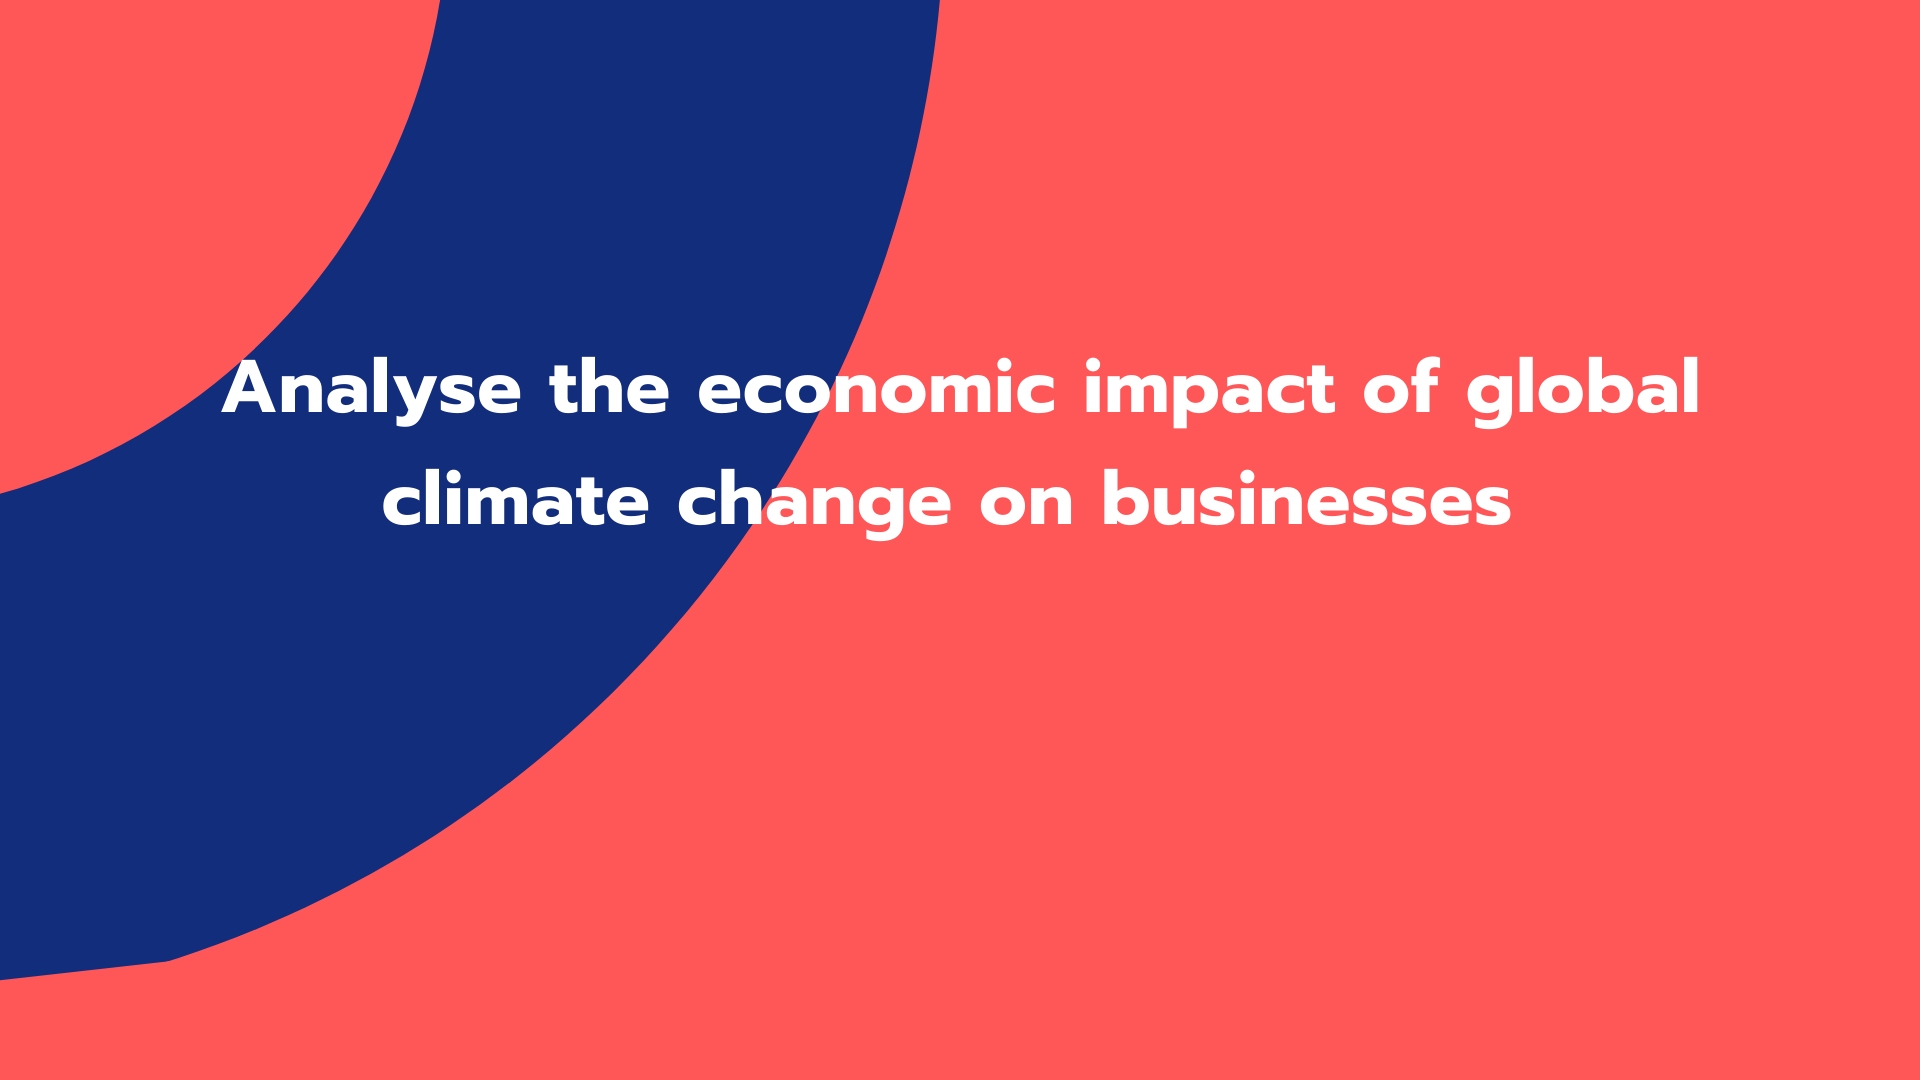 Analyse the economic impact of global climate change on businesses